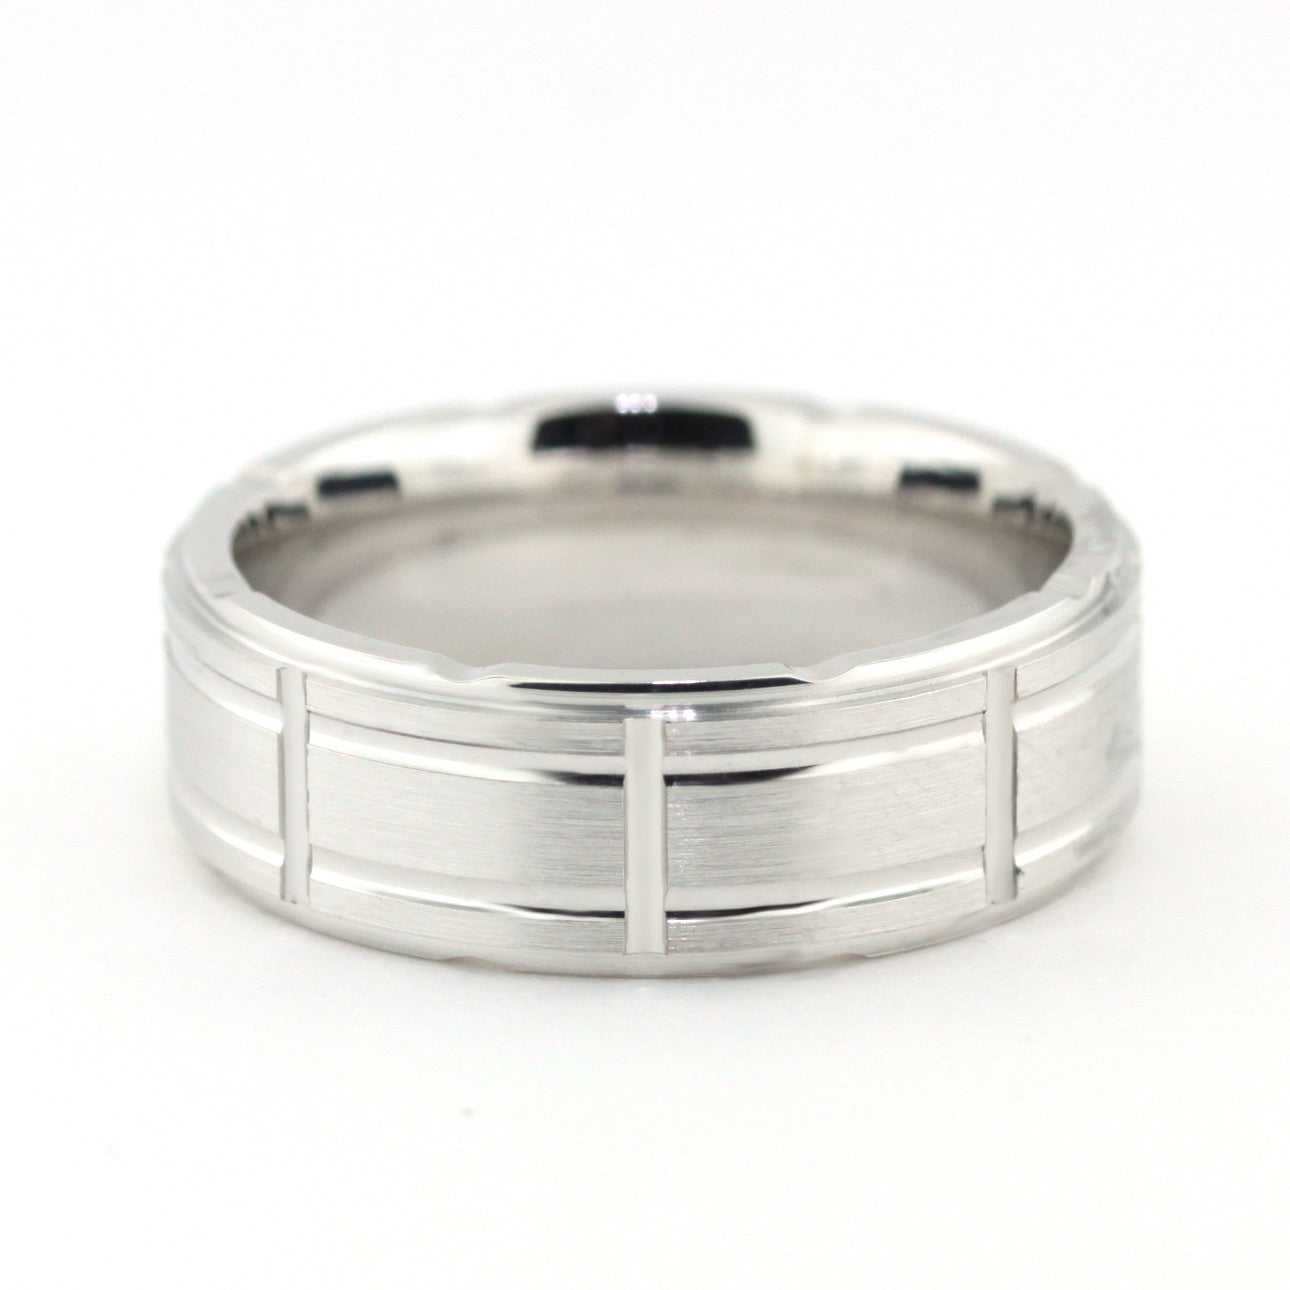 Men's Wedding Band - Fenced - Moissanite Rings